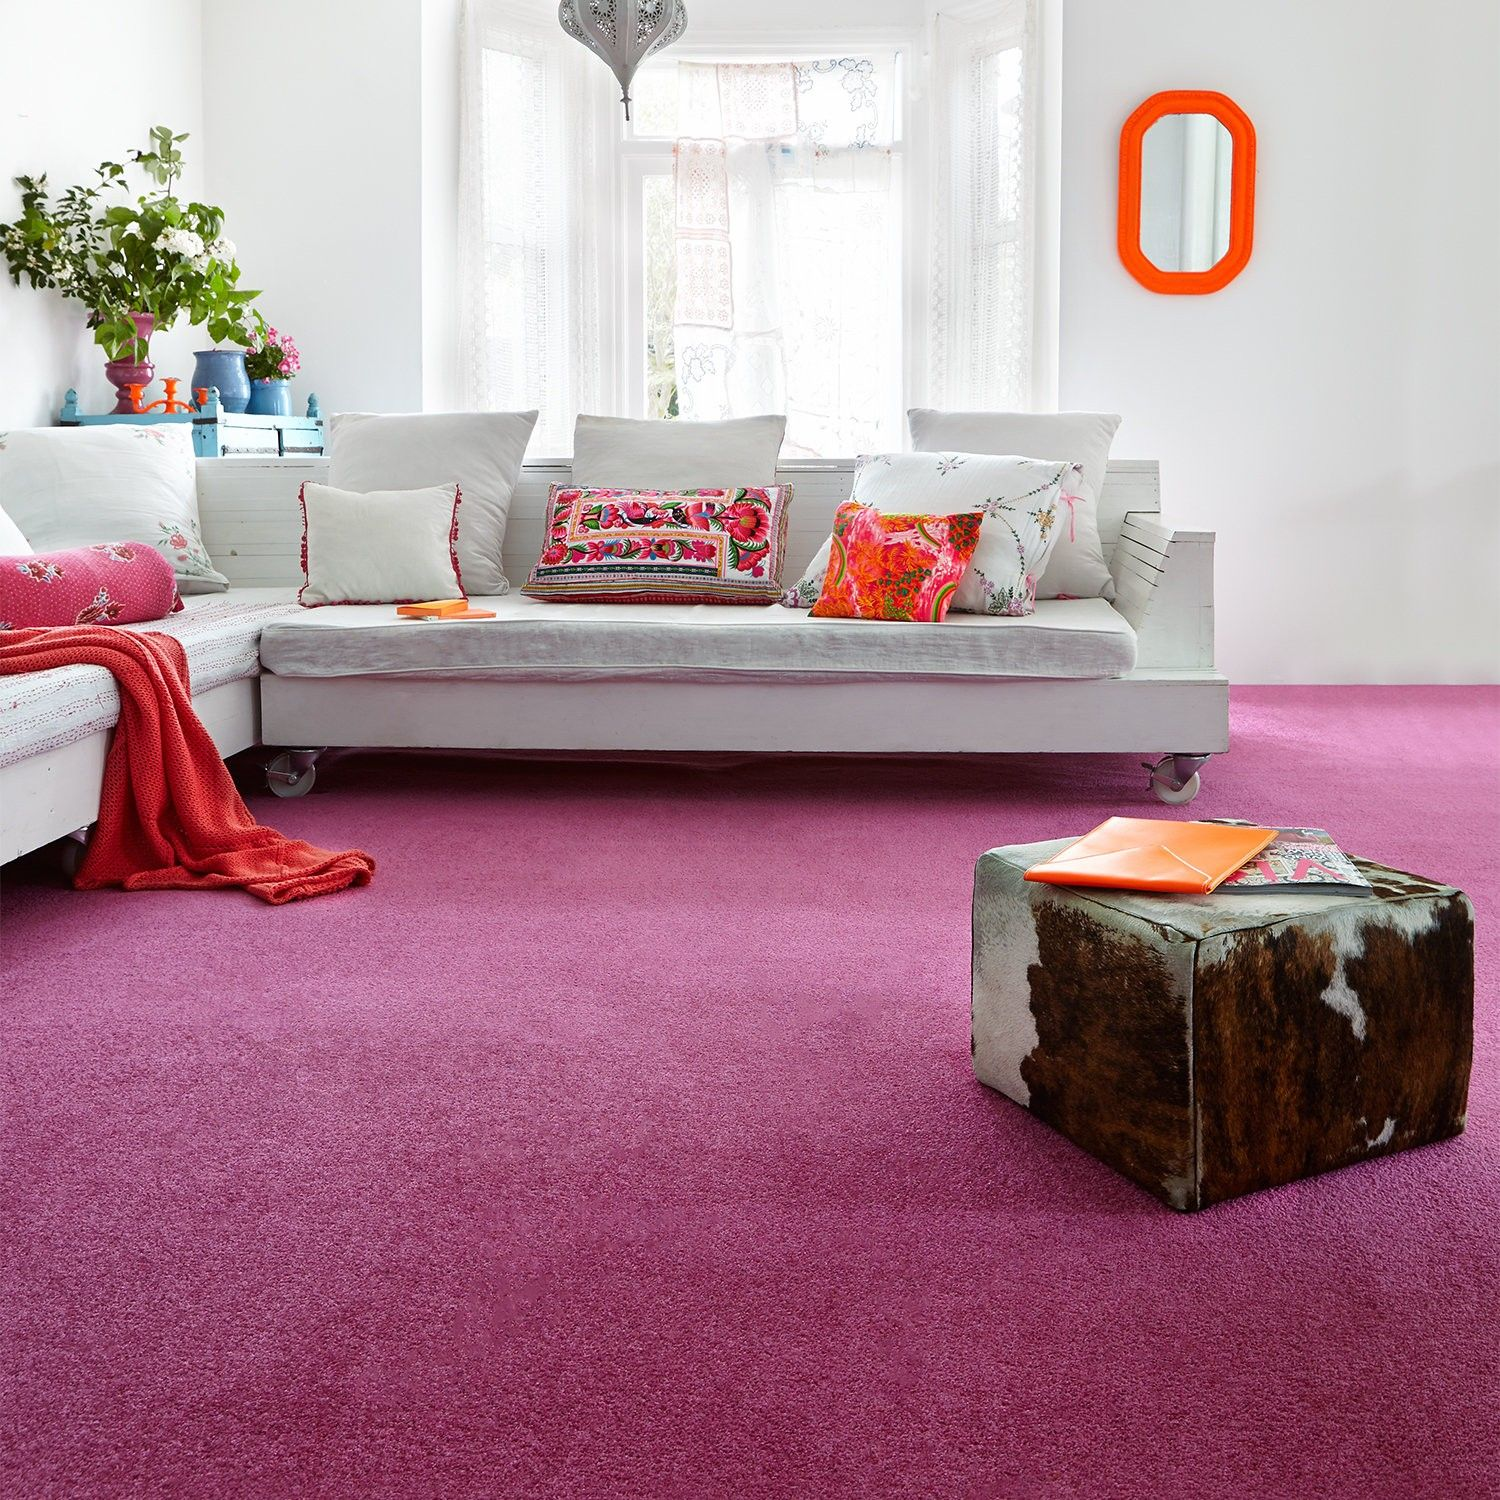 Amberley Twist Plain Carpet Bedroom Carpet Living Room Carpet Pink Living Room